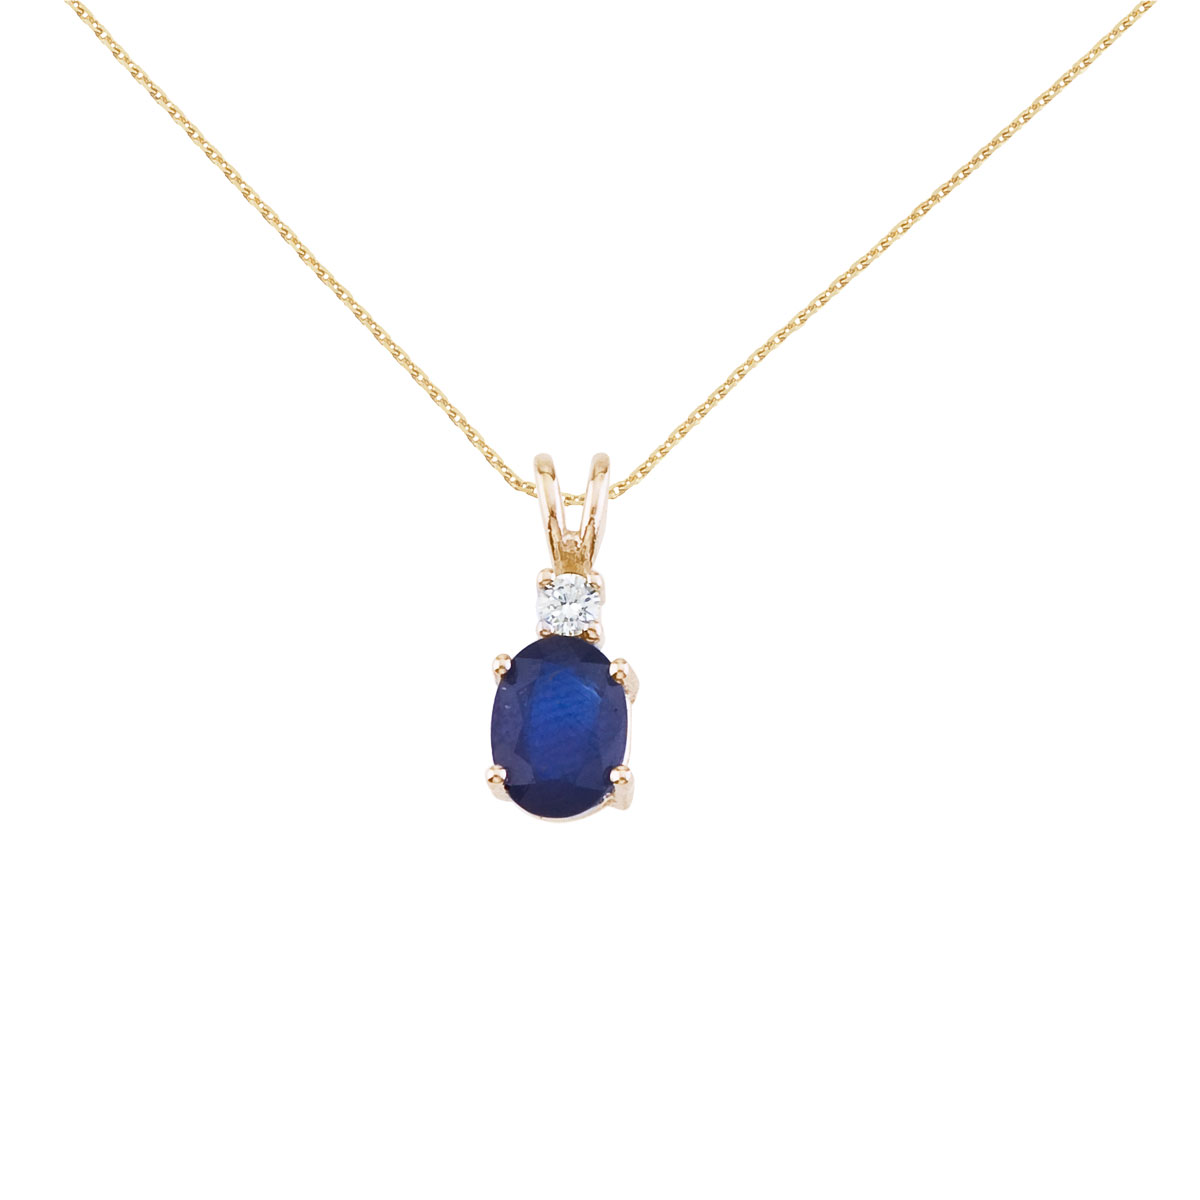 7x5 mm natural sapphire and diamond pendant set in 14k yellow gold.